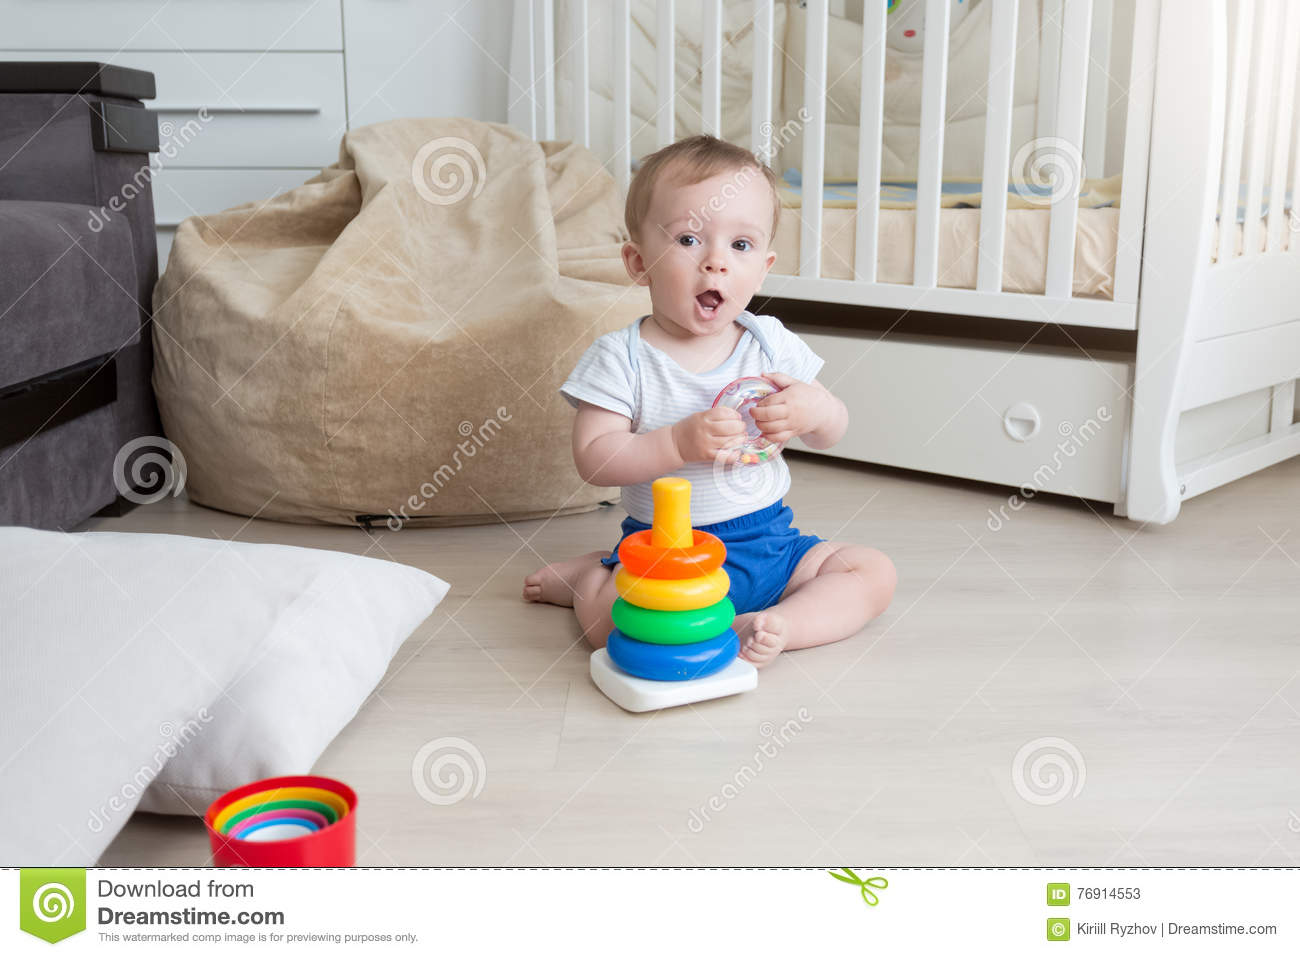 9 Months Old Baby Playing On Floor And Assembling Toy Tower Stock